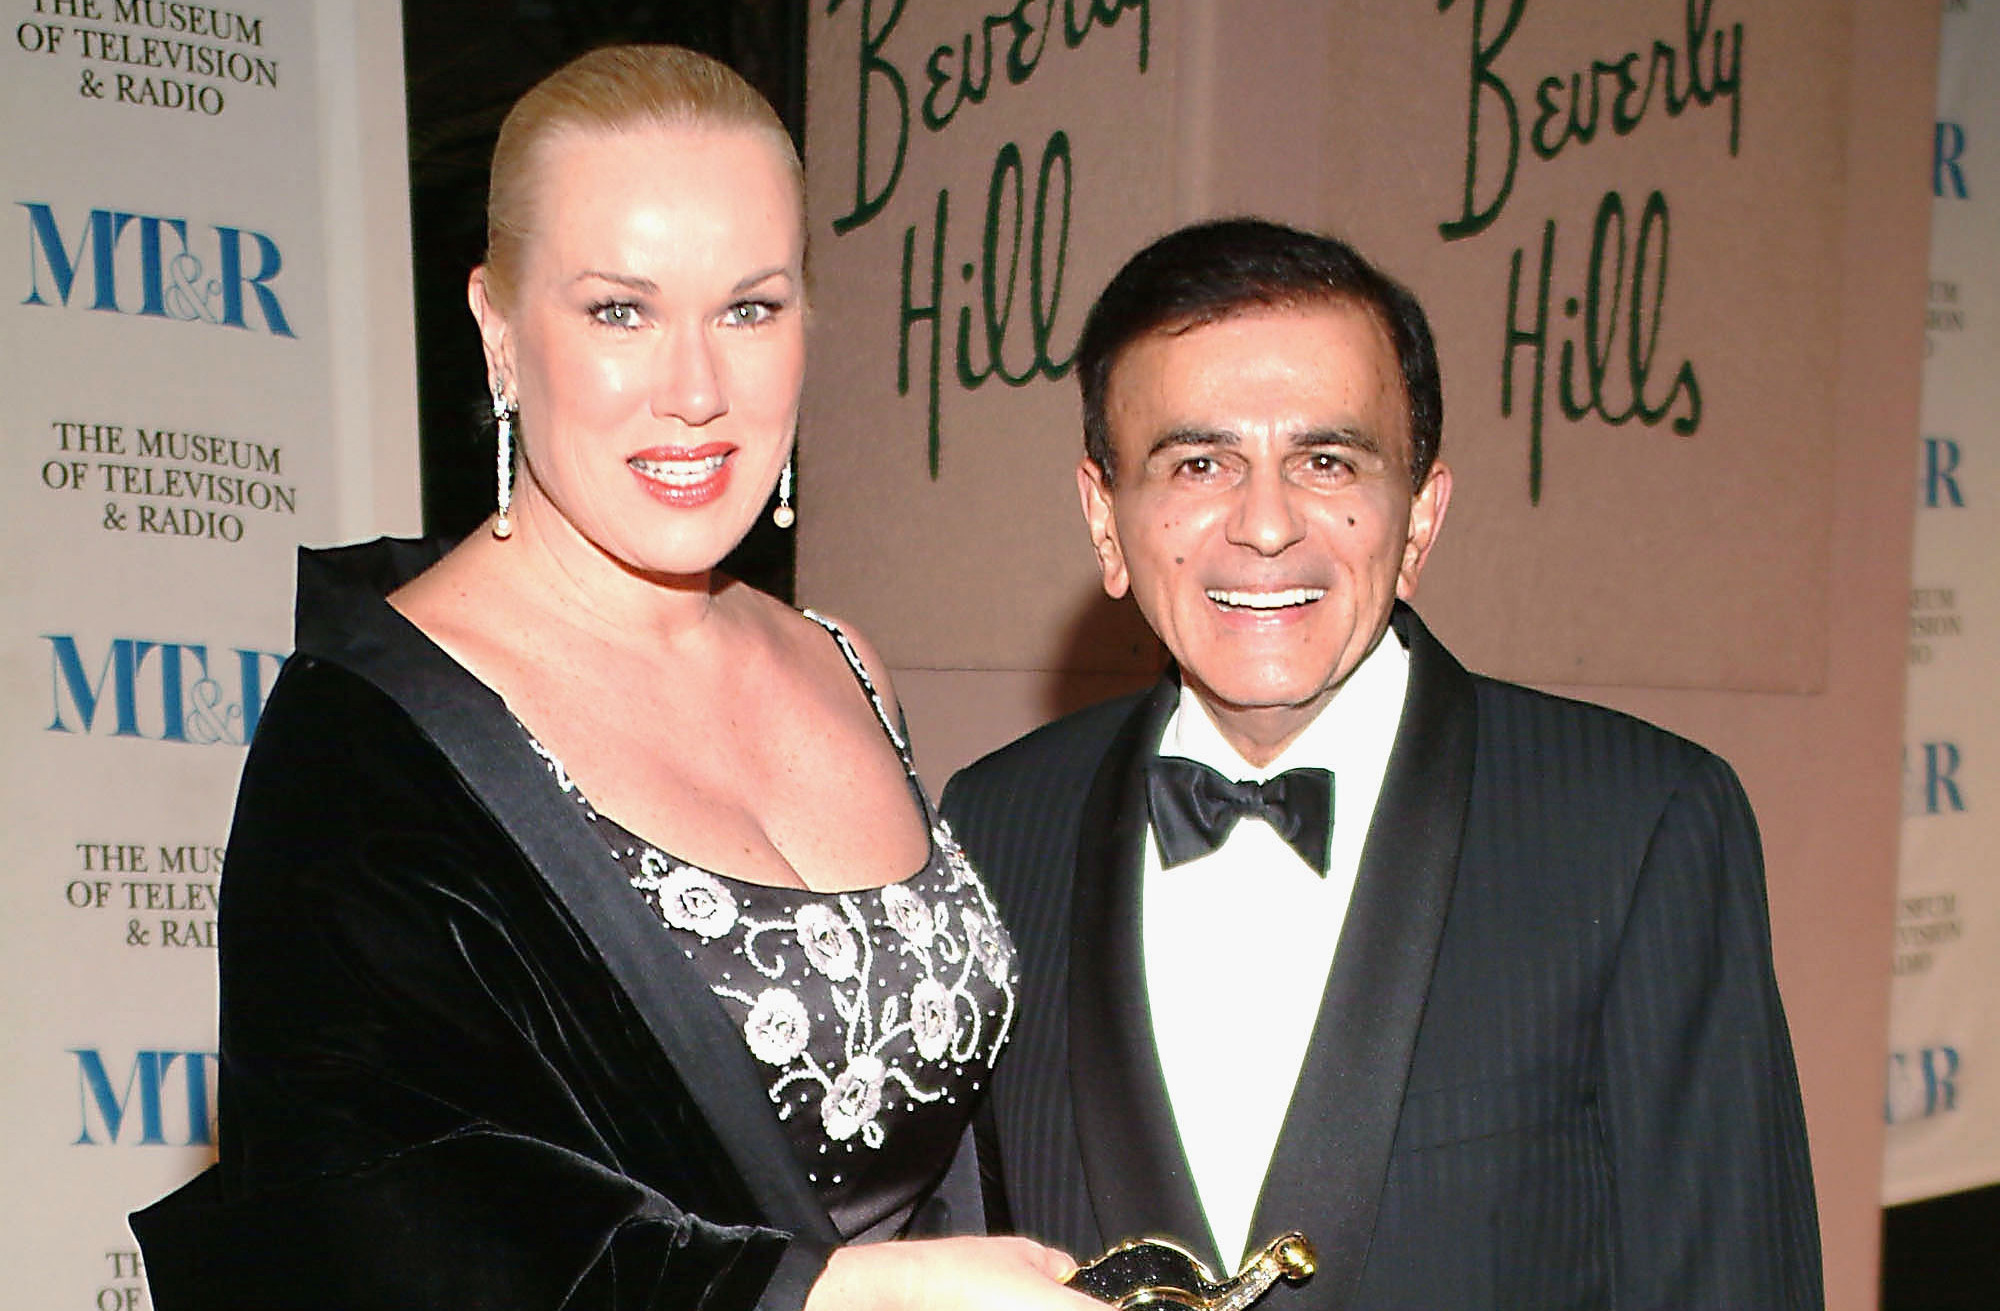 Casey Kasem's wife won't face elder abuse charges, district attorney says